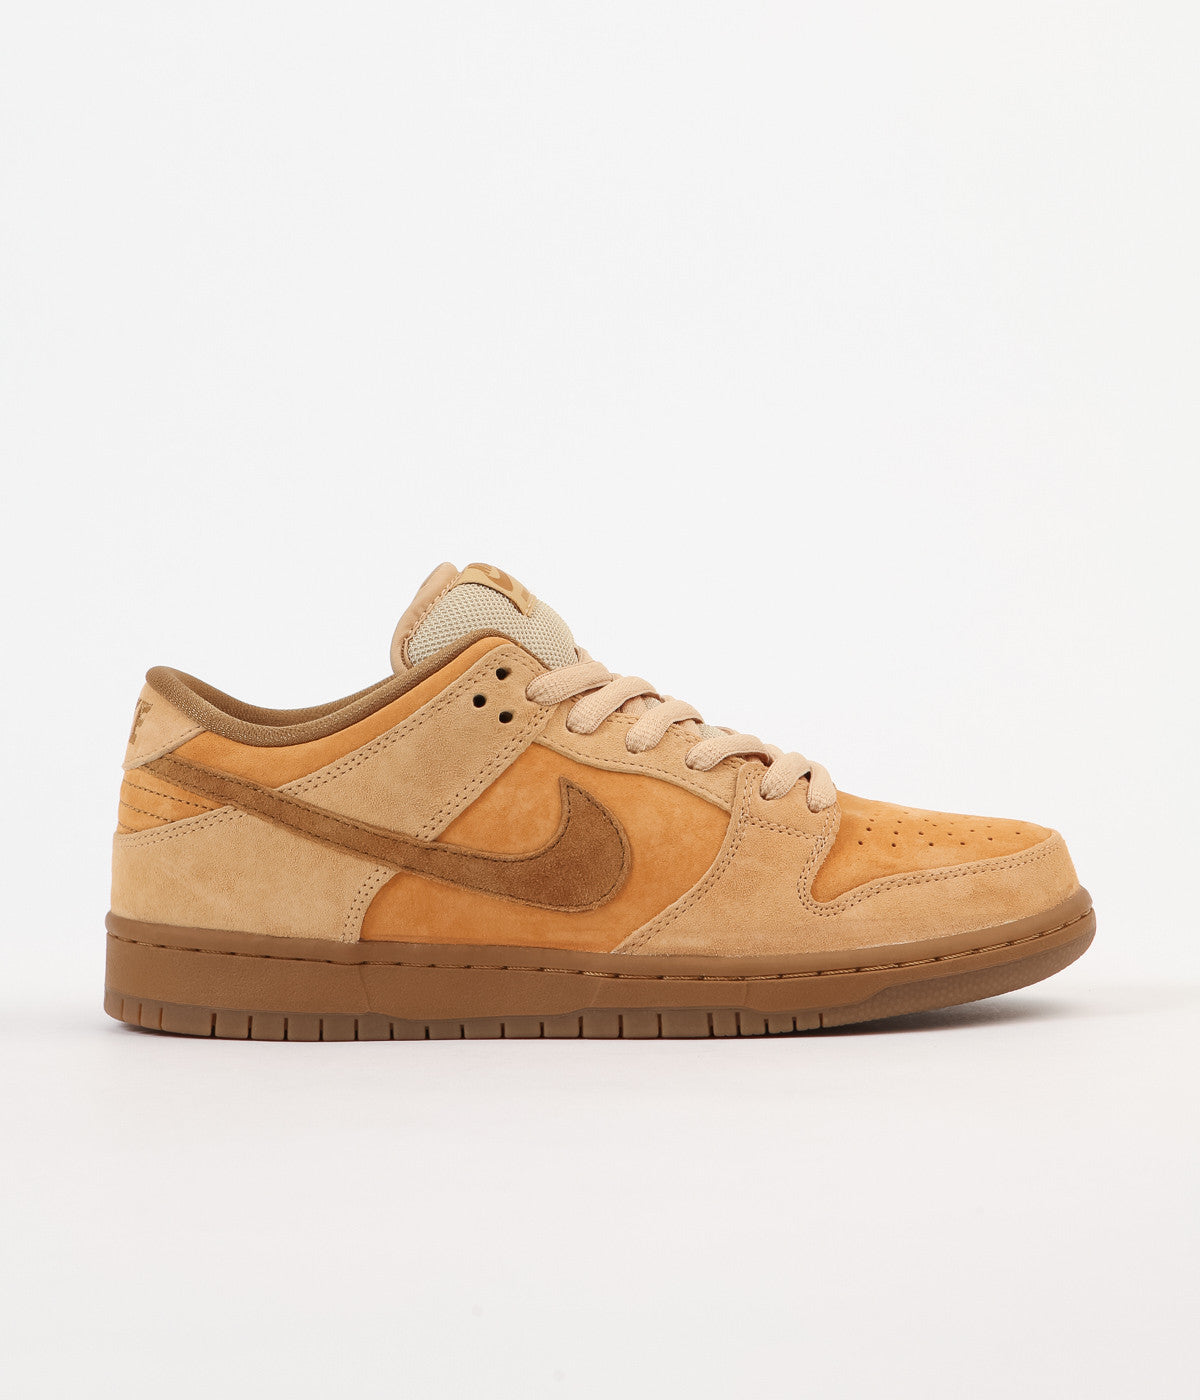 sale retailer a1d92 a97fa Nike SB Dunk Low Shoes - Dune   Twig - Wheat - Gum Medium Brown